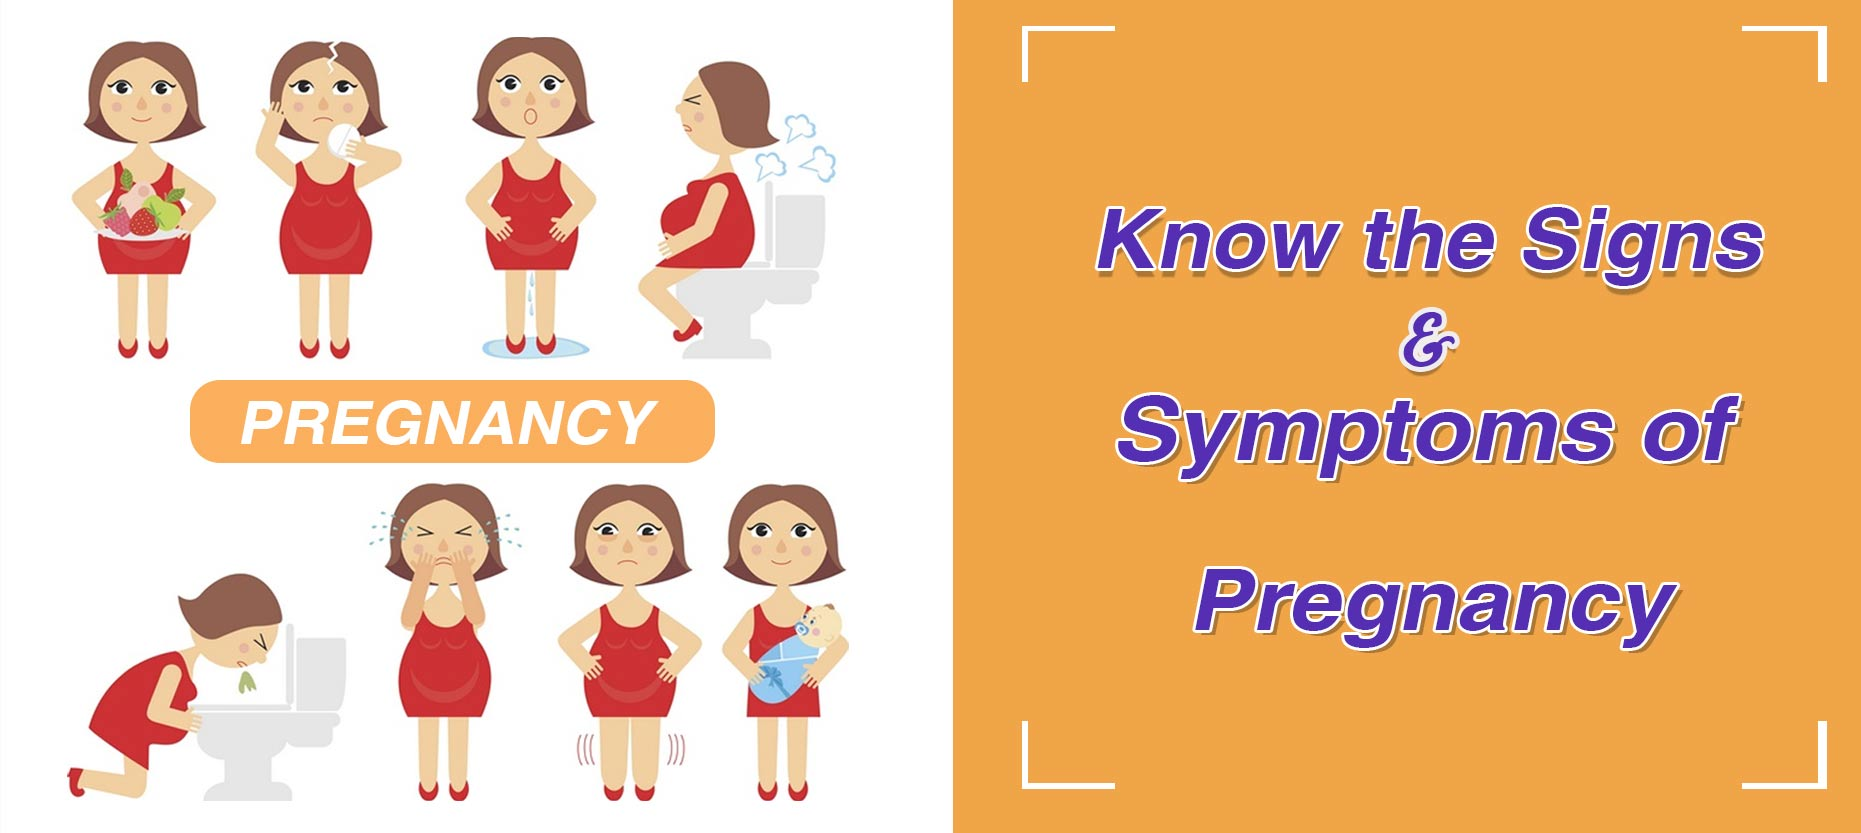 Pregnancy: Know the Signs & Symptoms